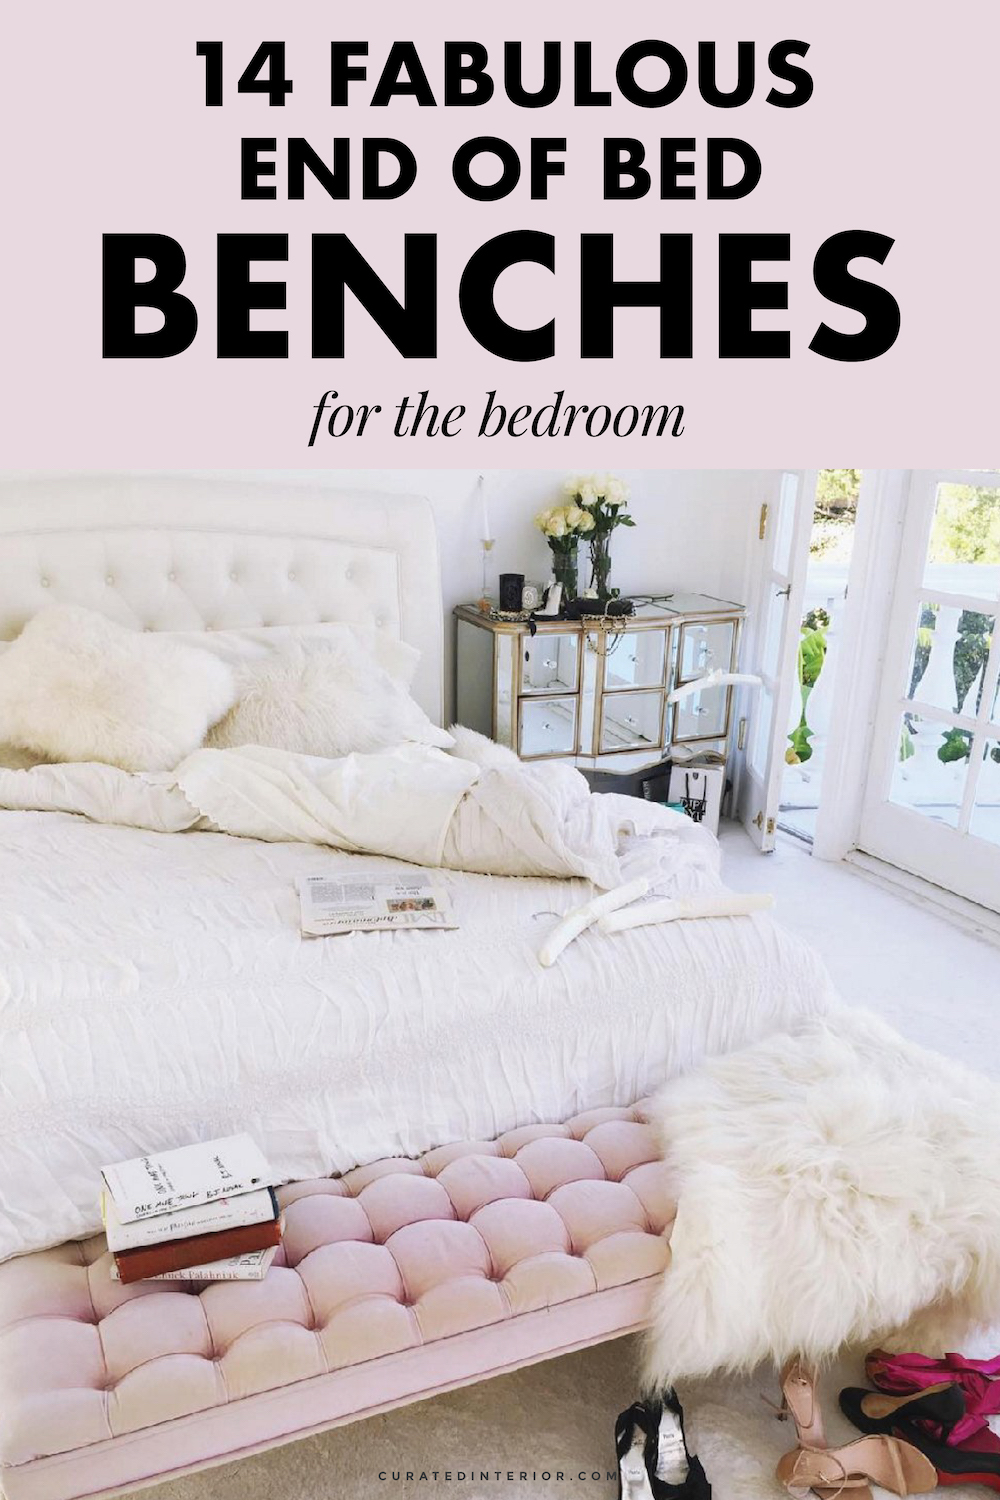 End of Bed Benches, Bedroom Benches, Tufted Benches, Storage Benches, Benches for the Bedroom, Bedroom Furniture